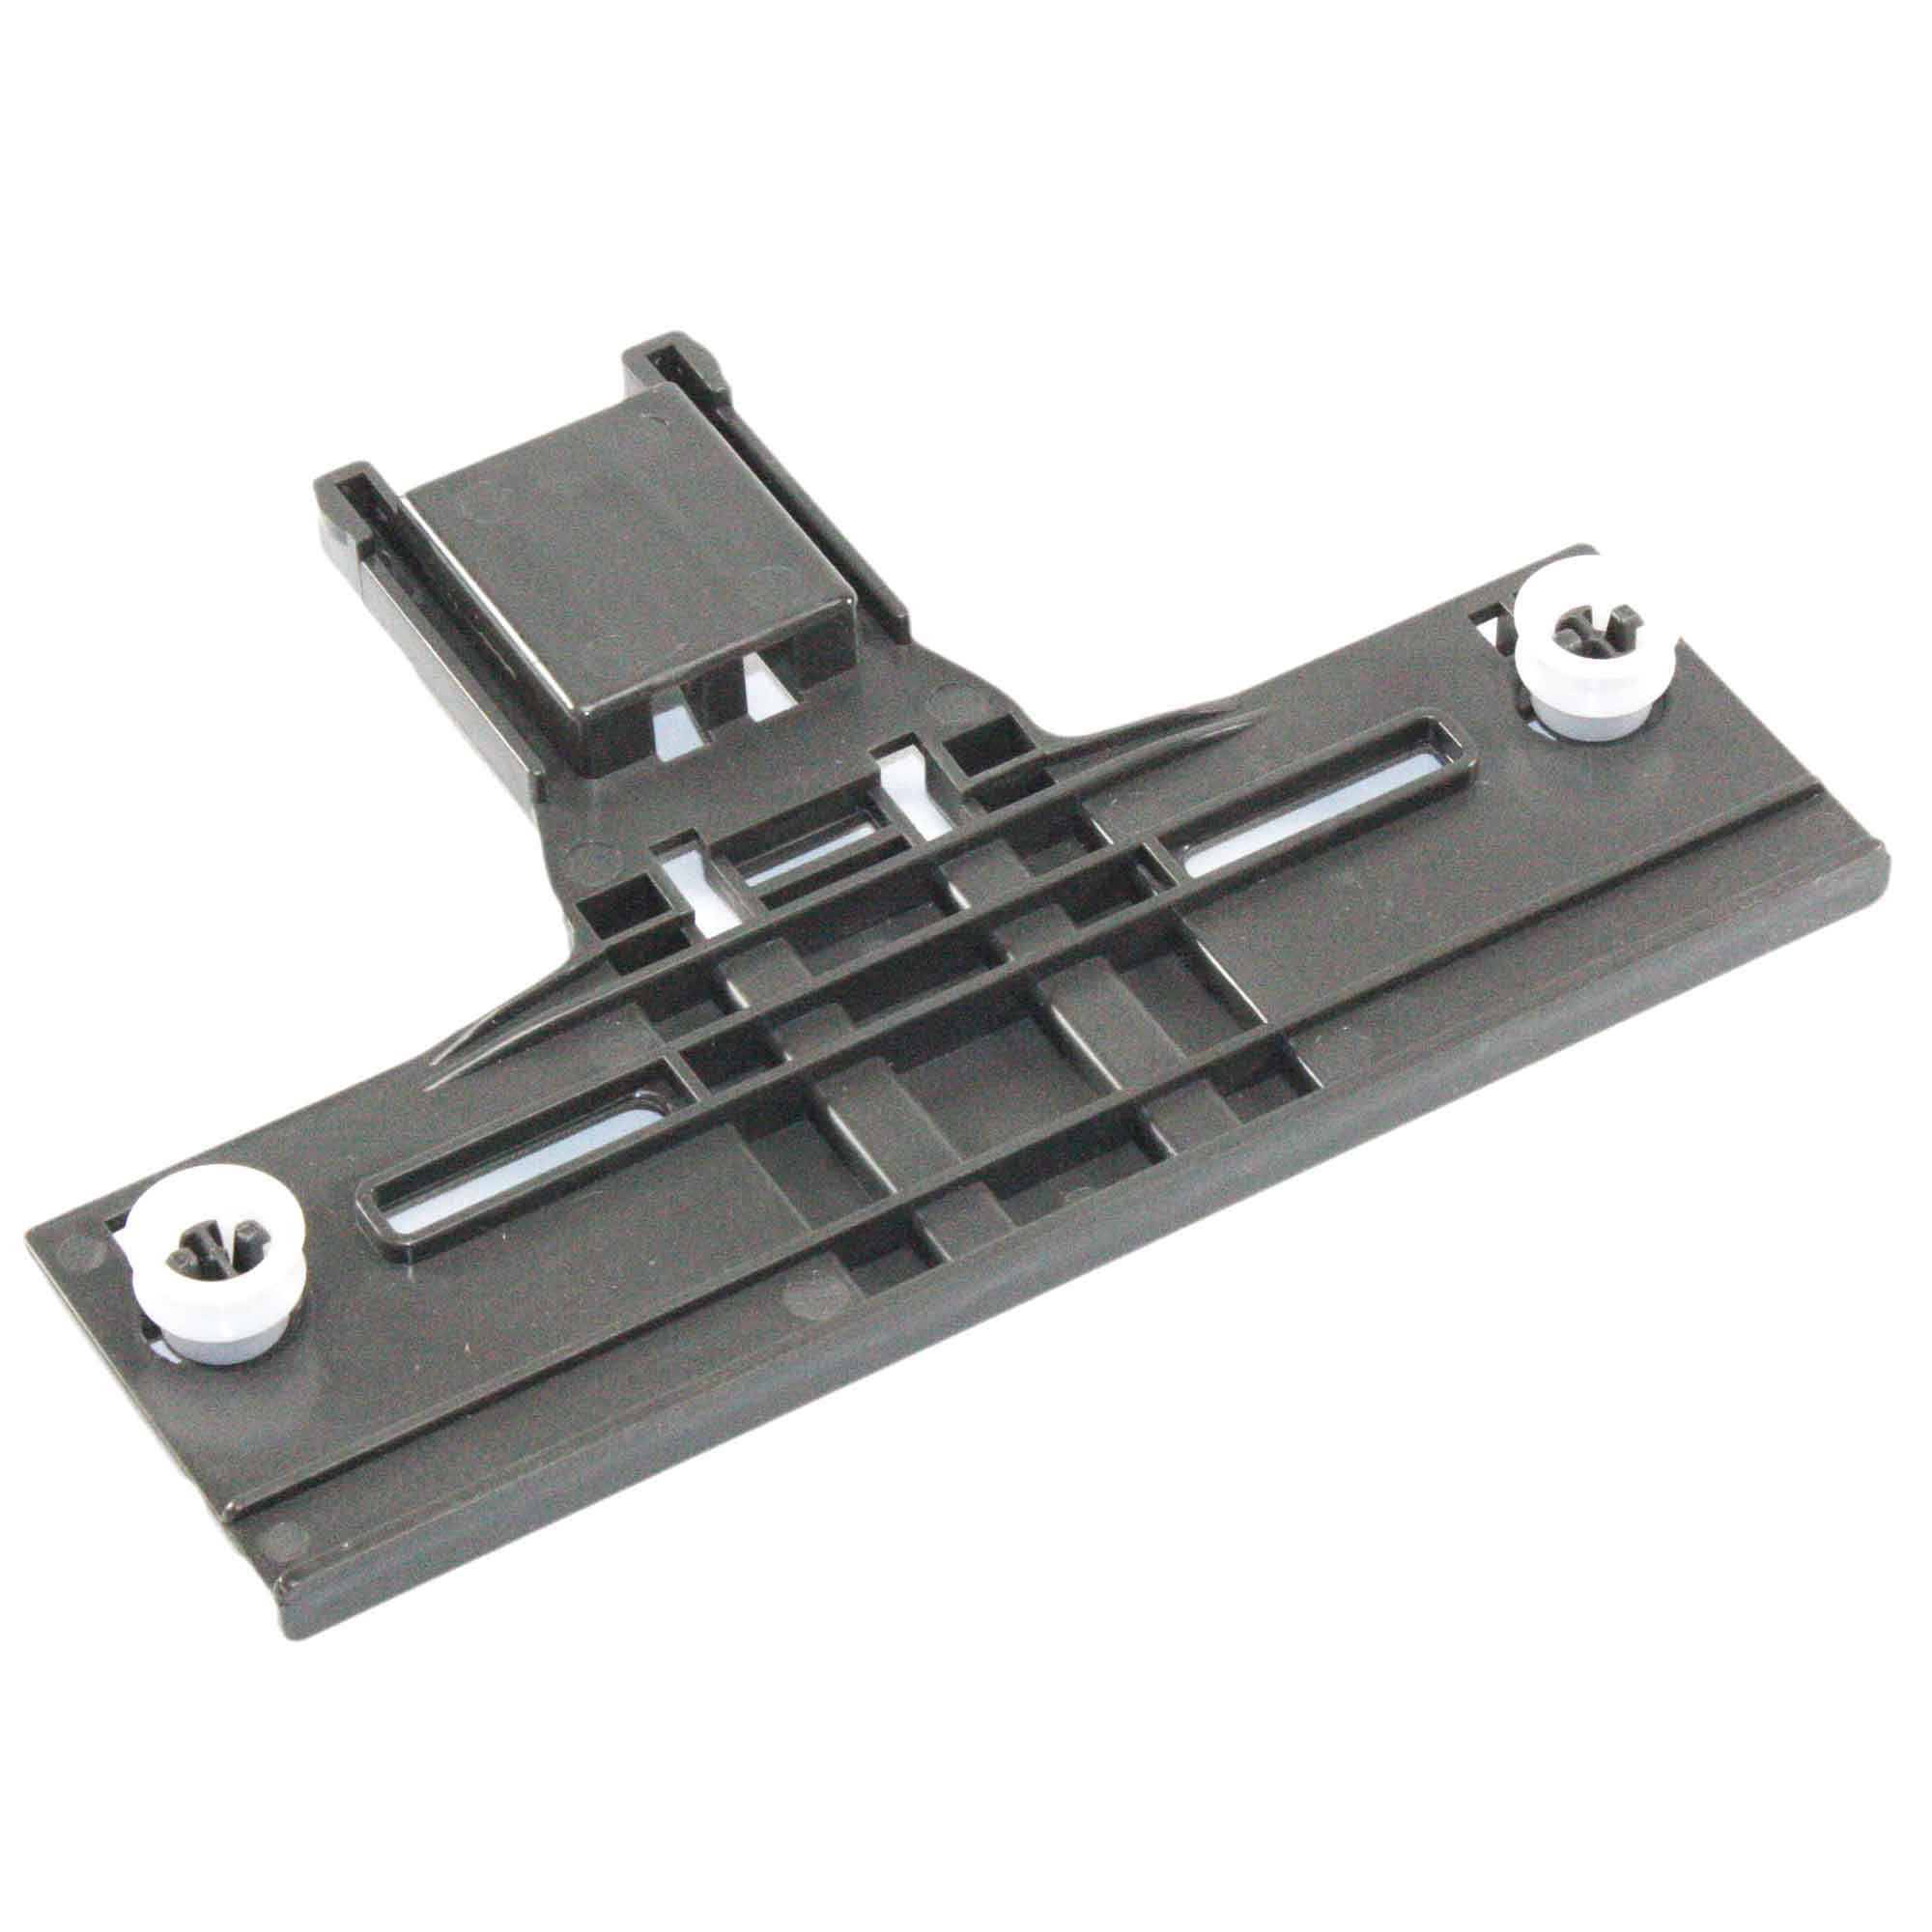 Supplying Demand W10350376 Dishwasher Top Rack Adjuster Works With W10712394